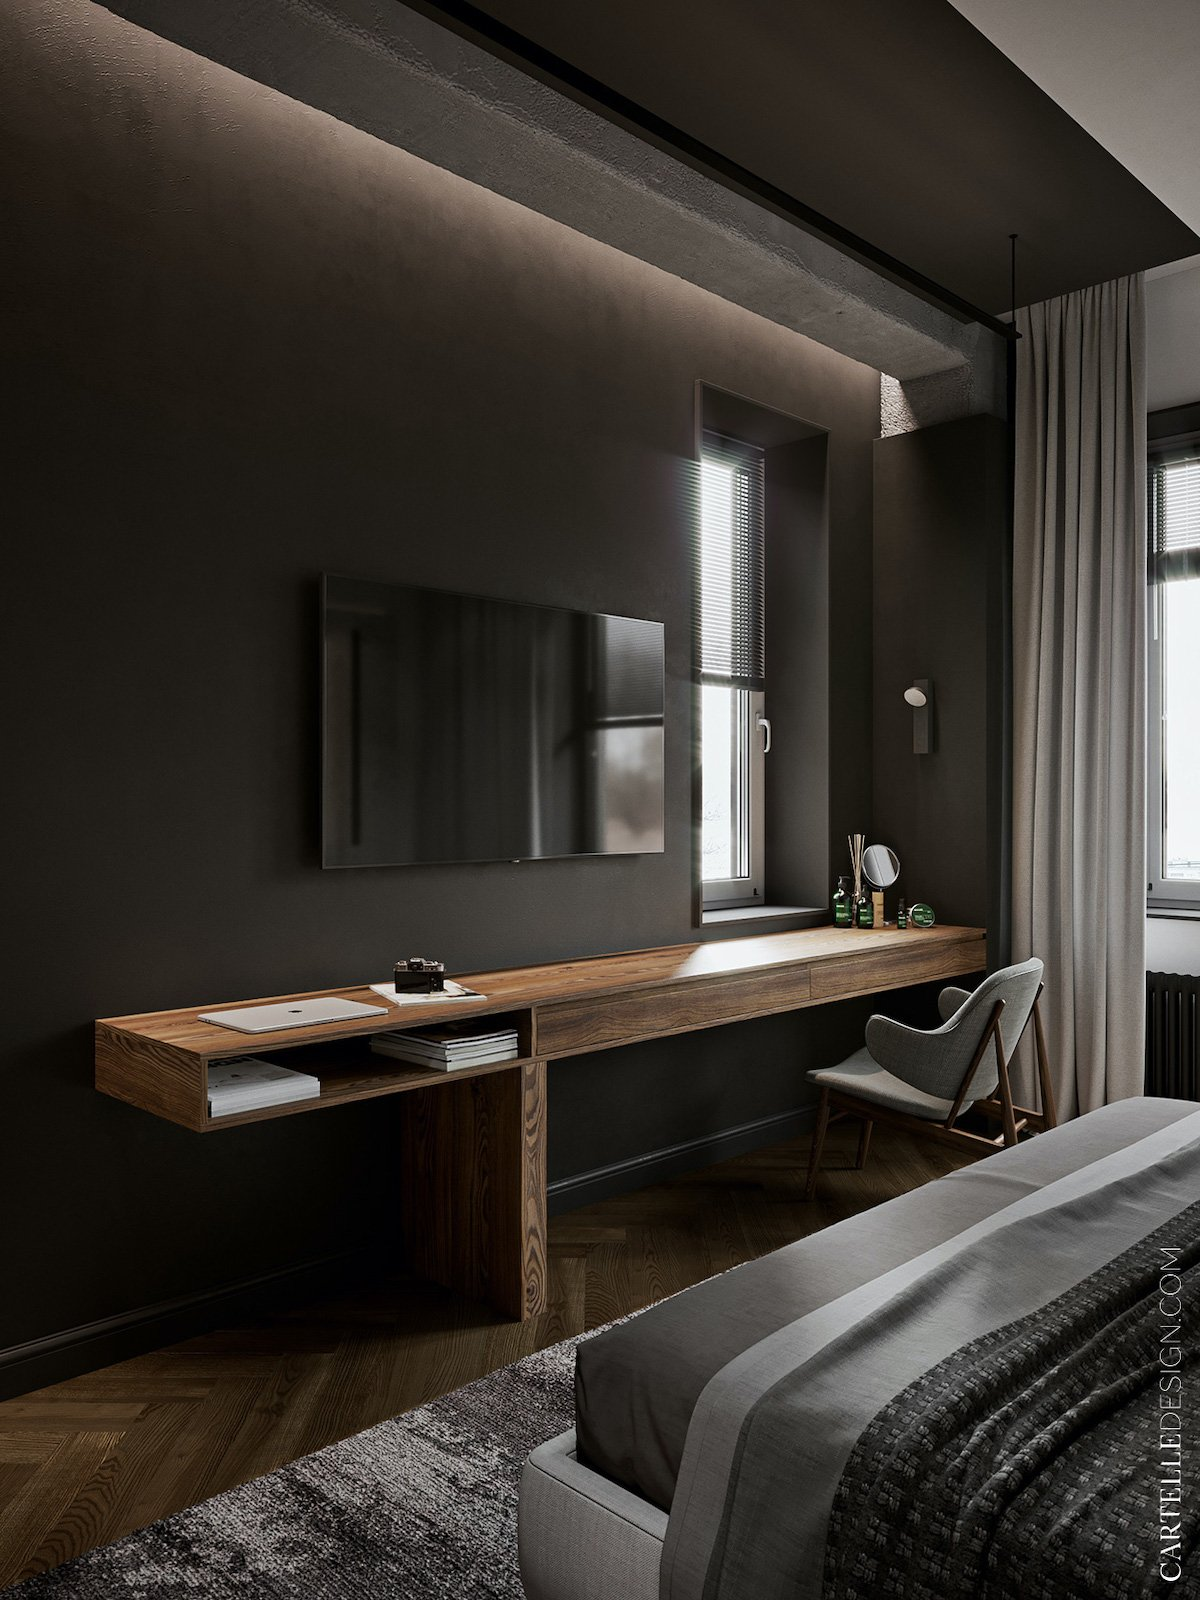 installer espace travail chambre façon hotel design - clem around the corner